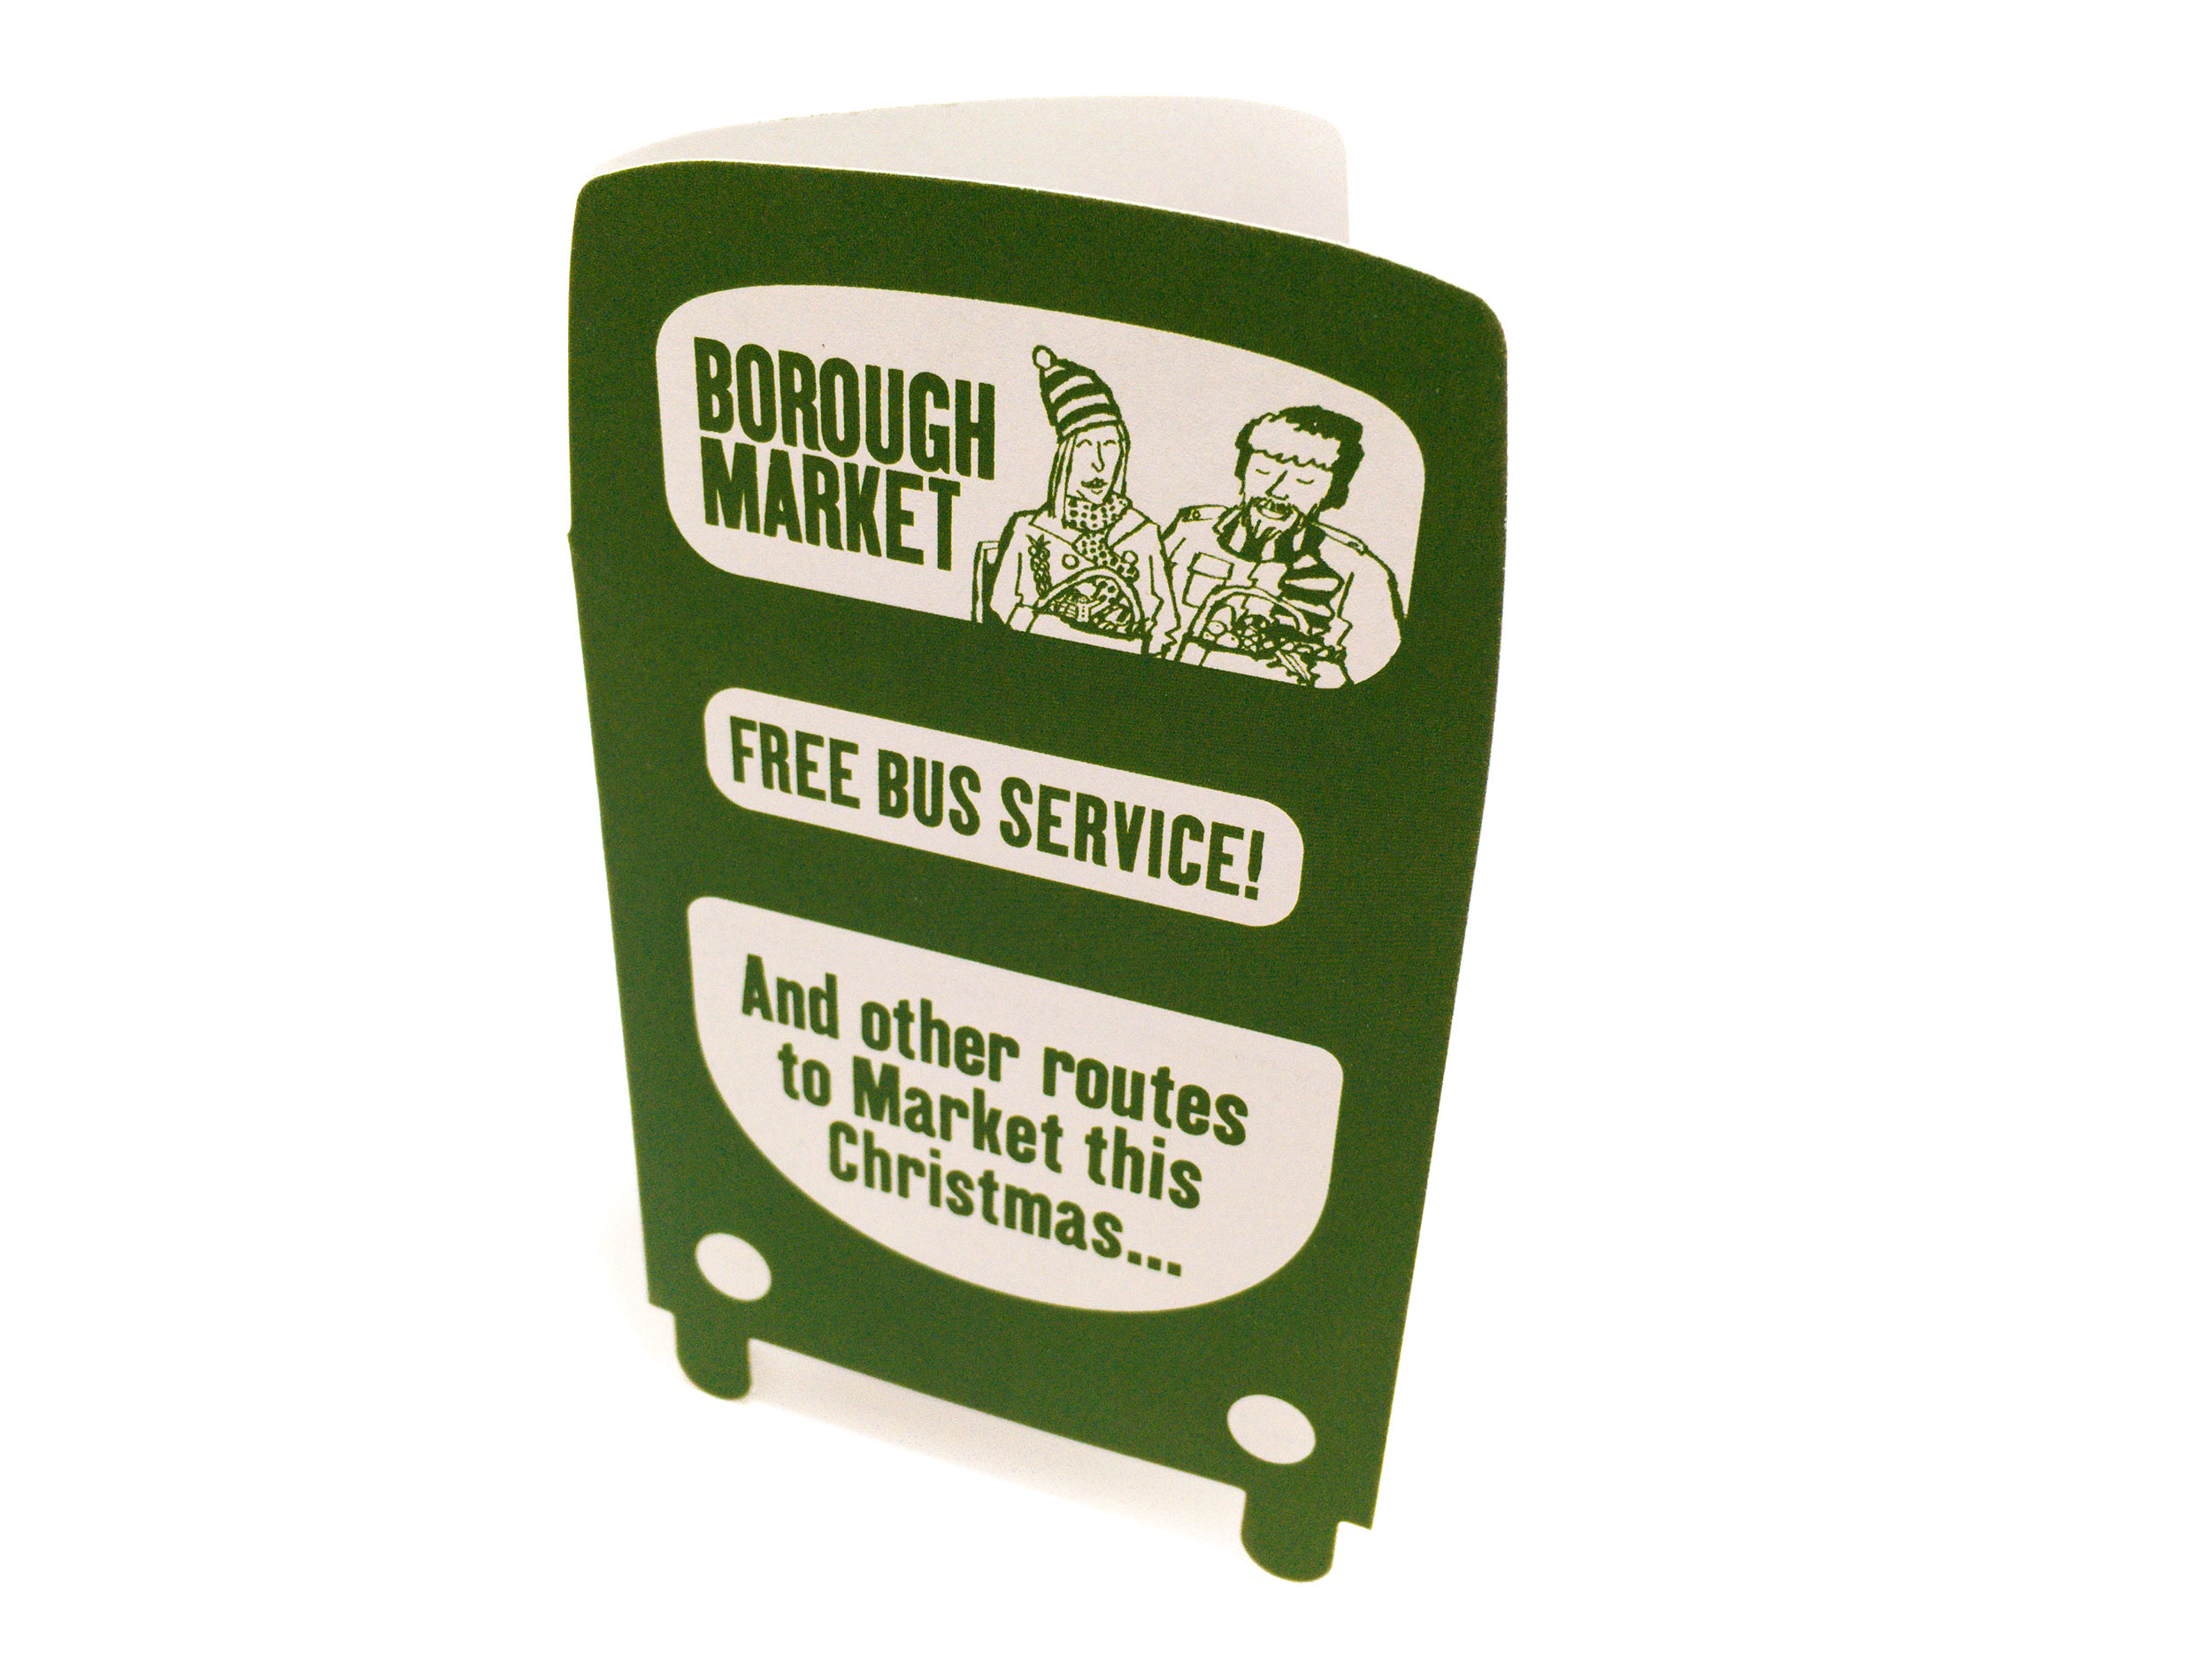 More Borough Market by James Oses, image 1